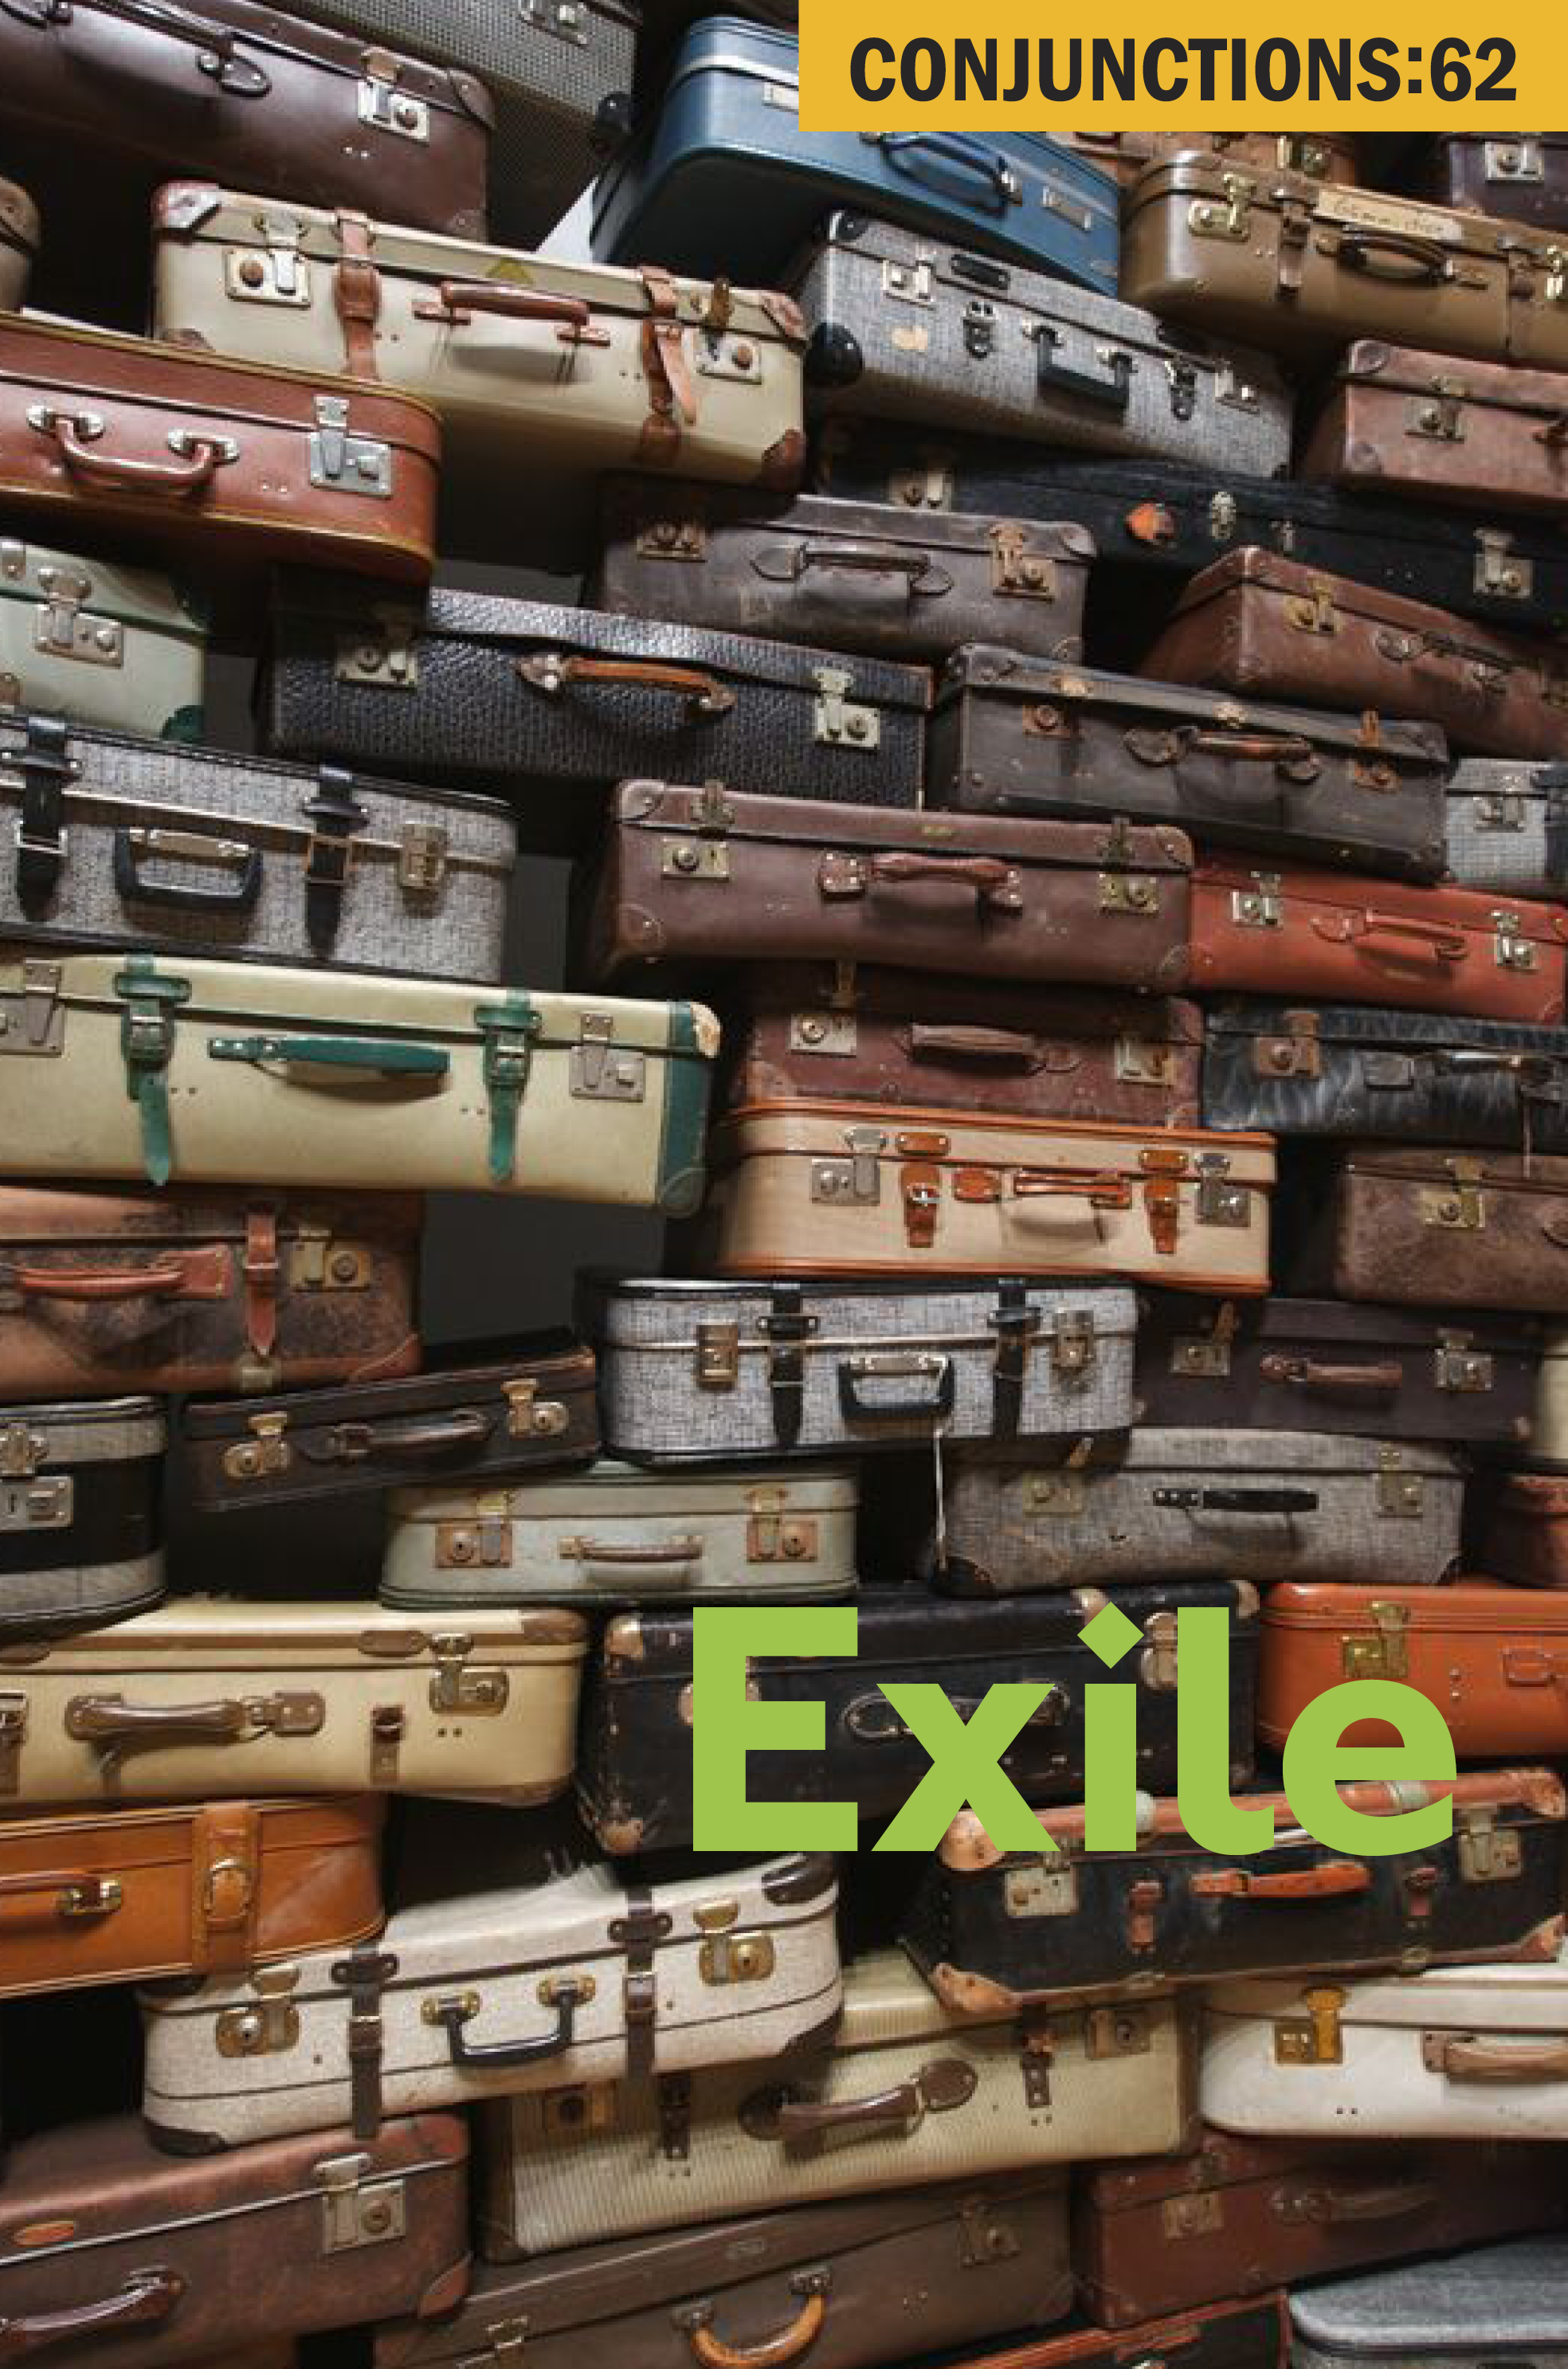 Exile Conjunctions: 62 cover showing multicolored suitcases stacked as a wall